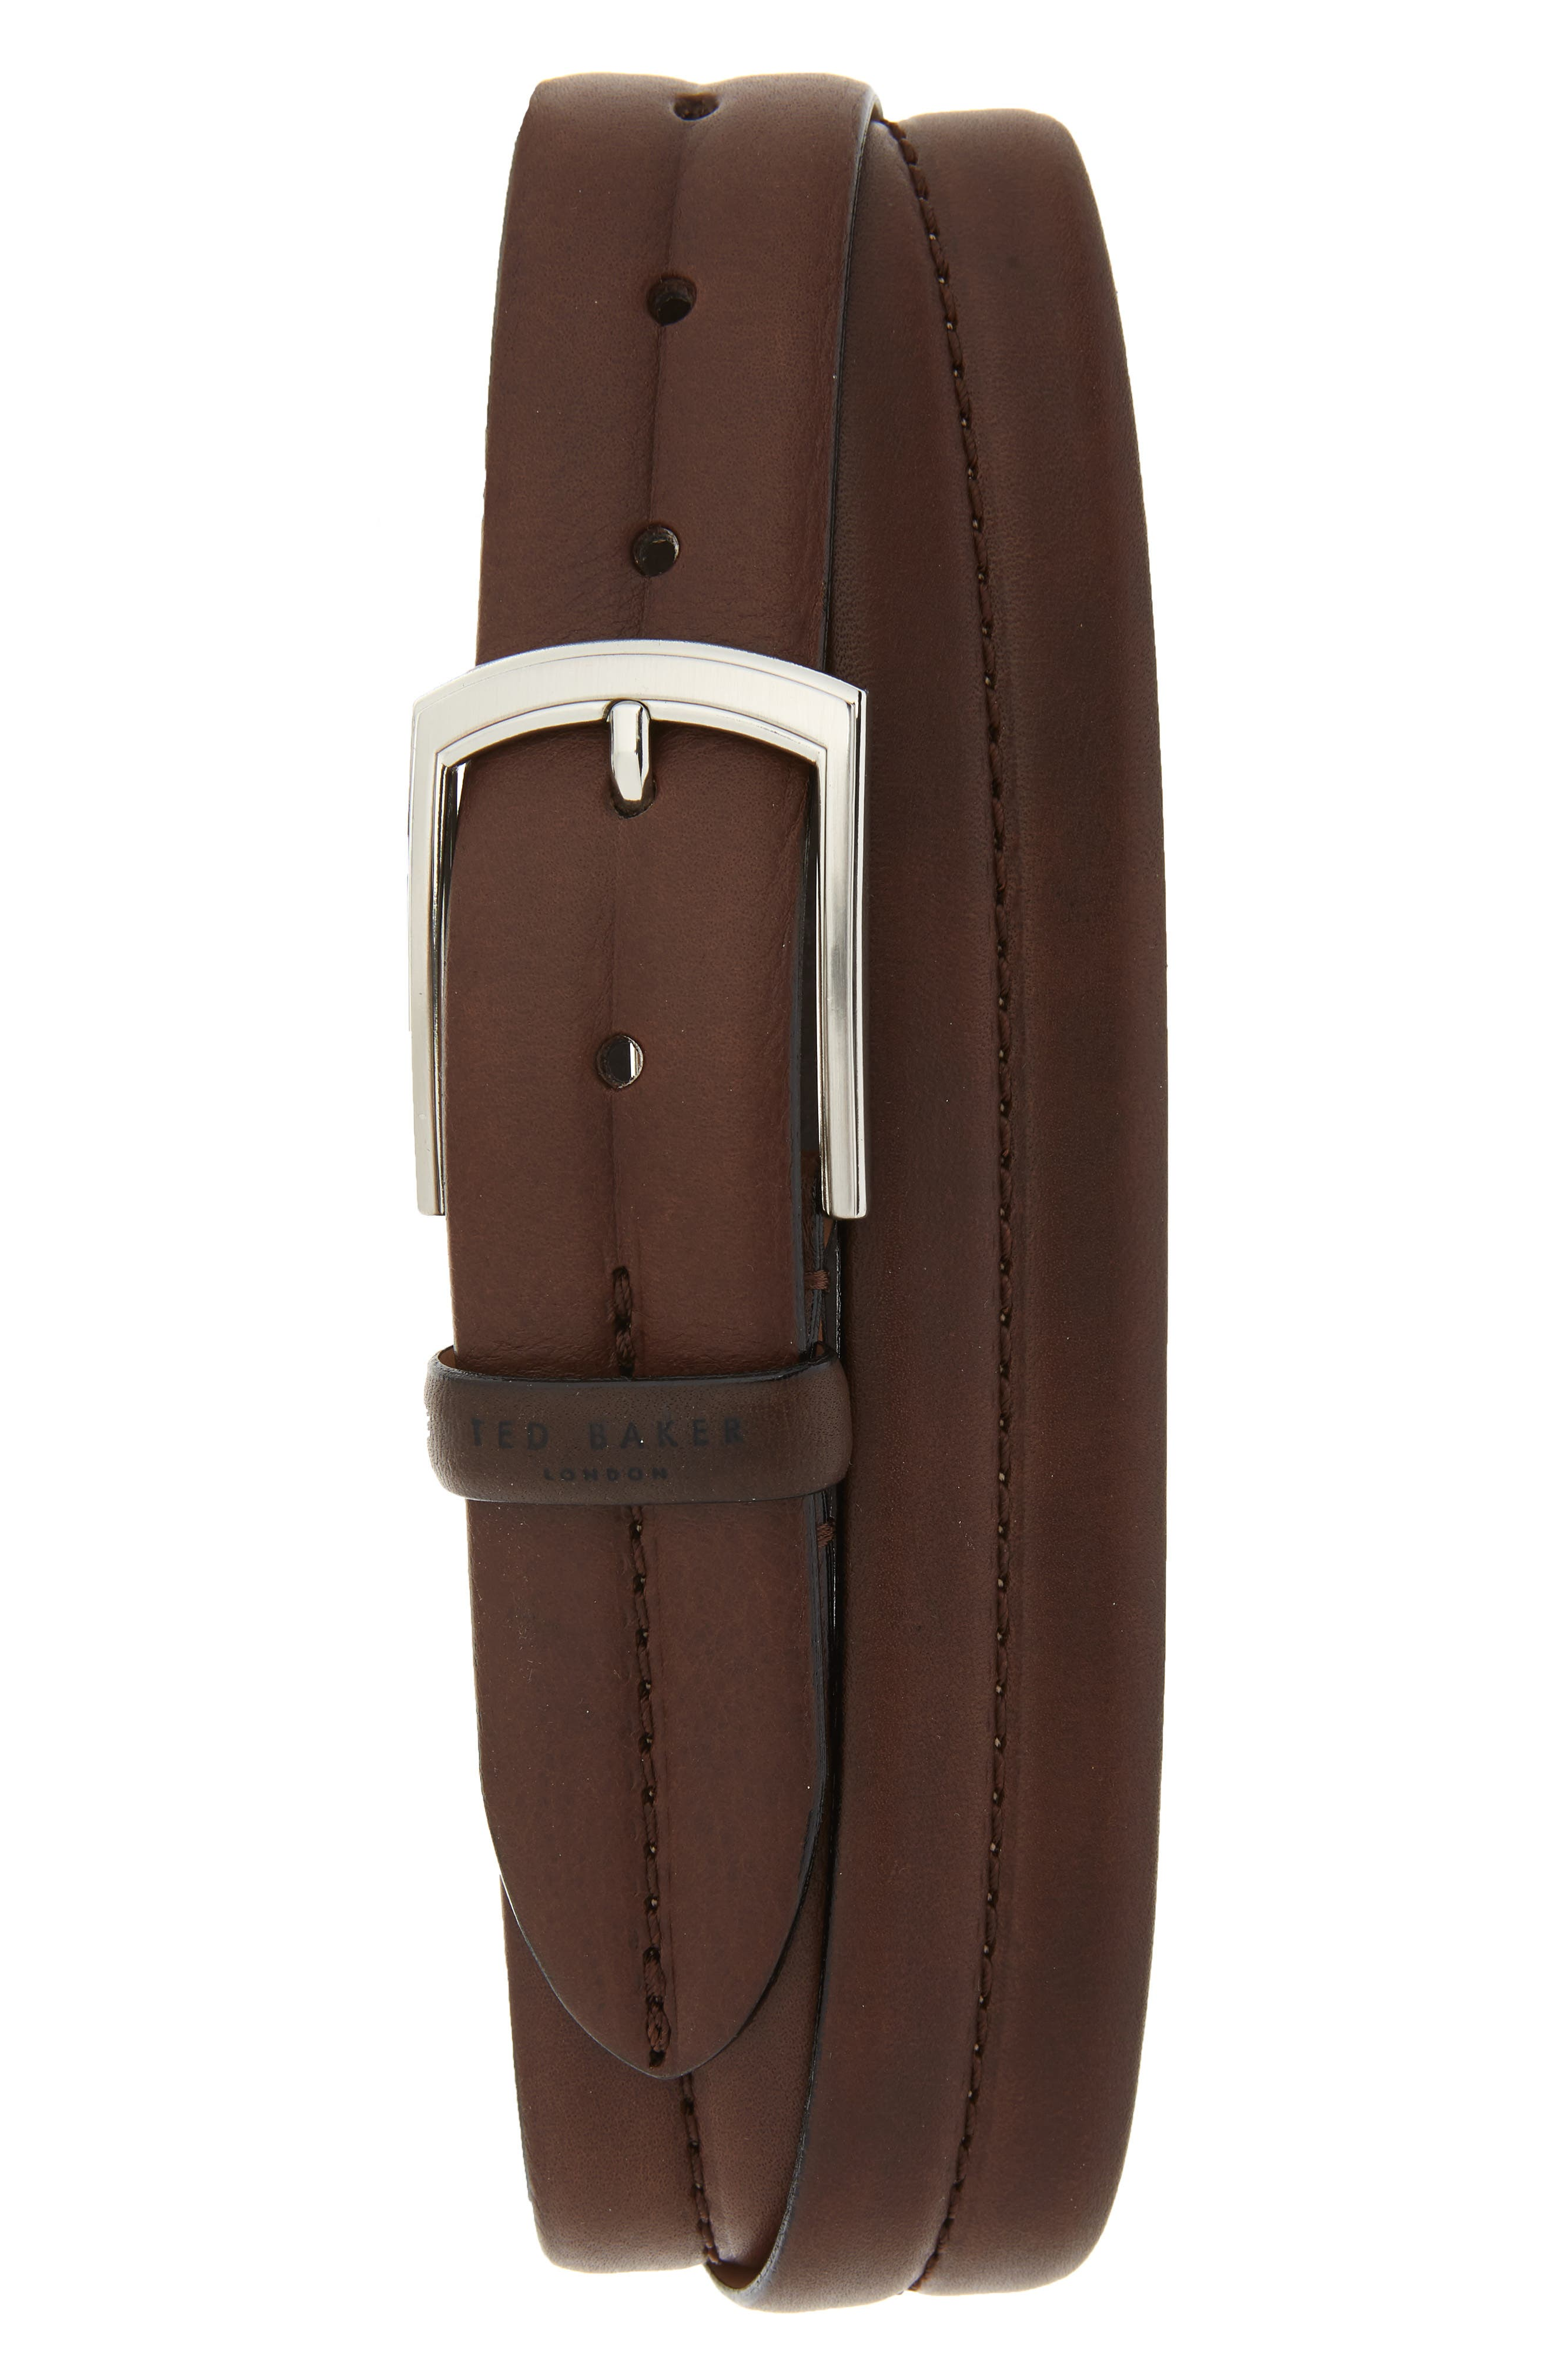 Ted Baker London Stitched Leather Belt, Chocolate